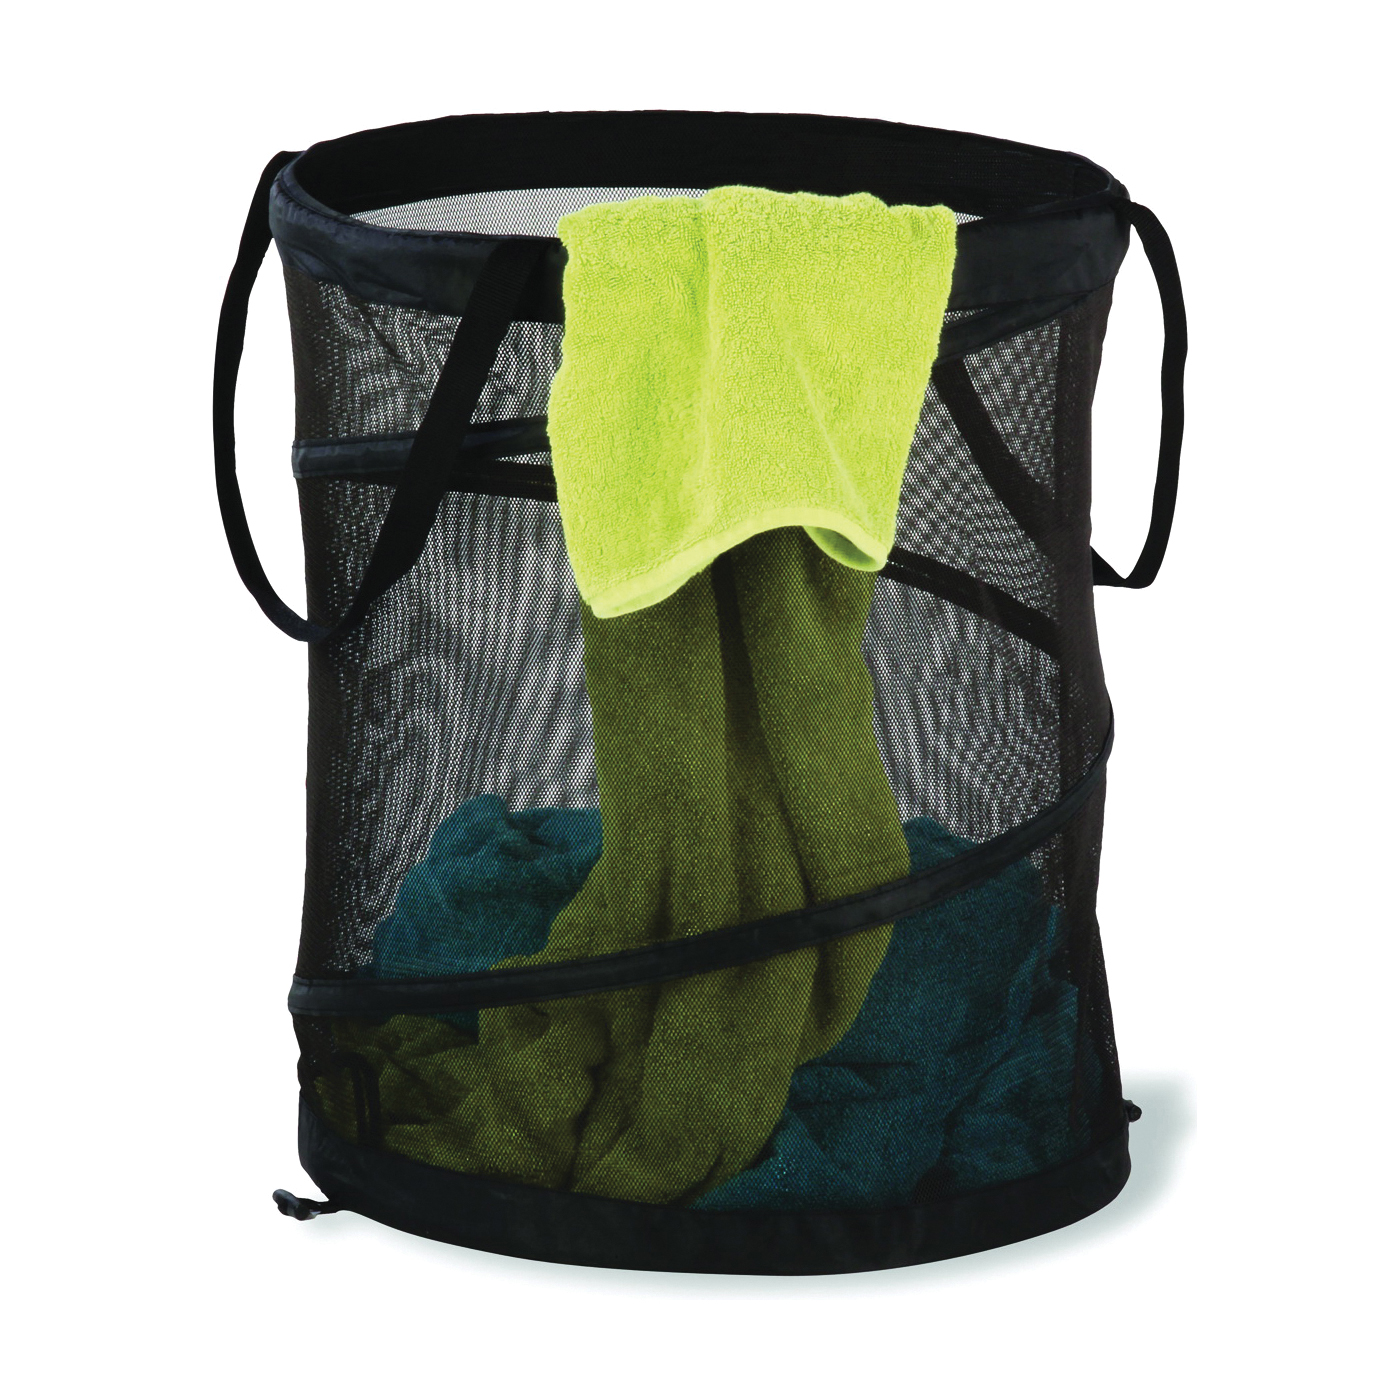 Picture of Honey-Can-Do HMP-01127 Large Mesh Pop-Up Hamper, 18-1/2 in W, 23.6 in H, 18-1/2 in D